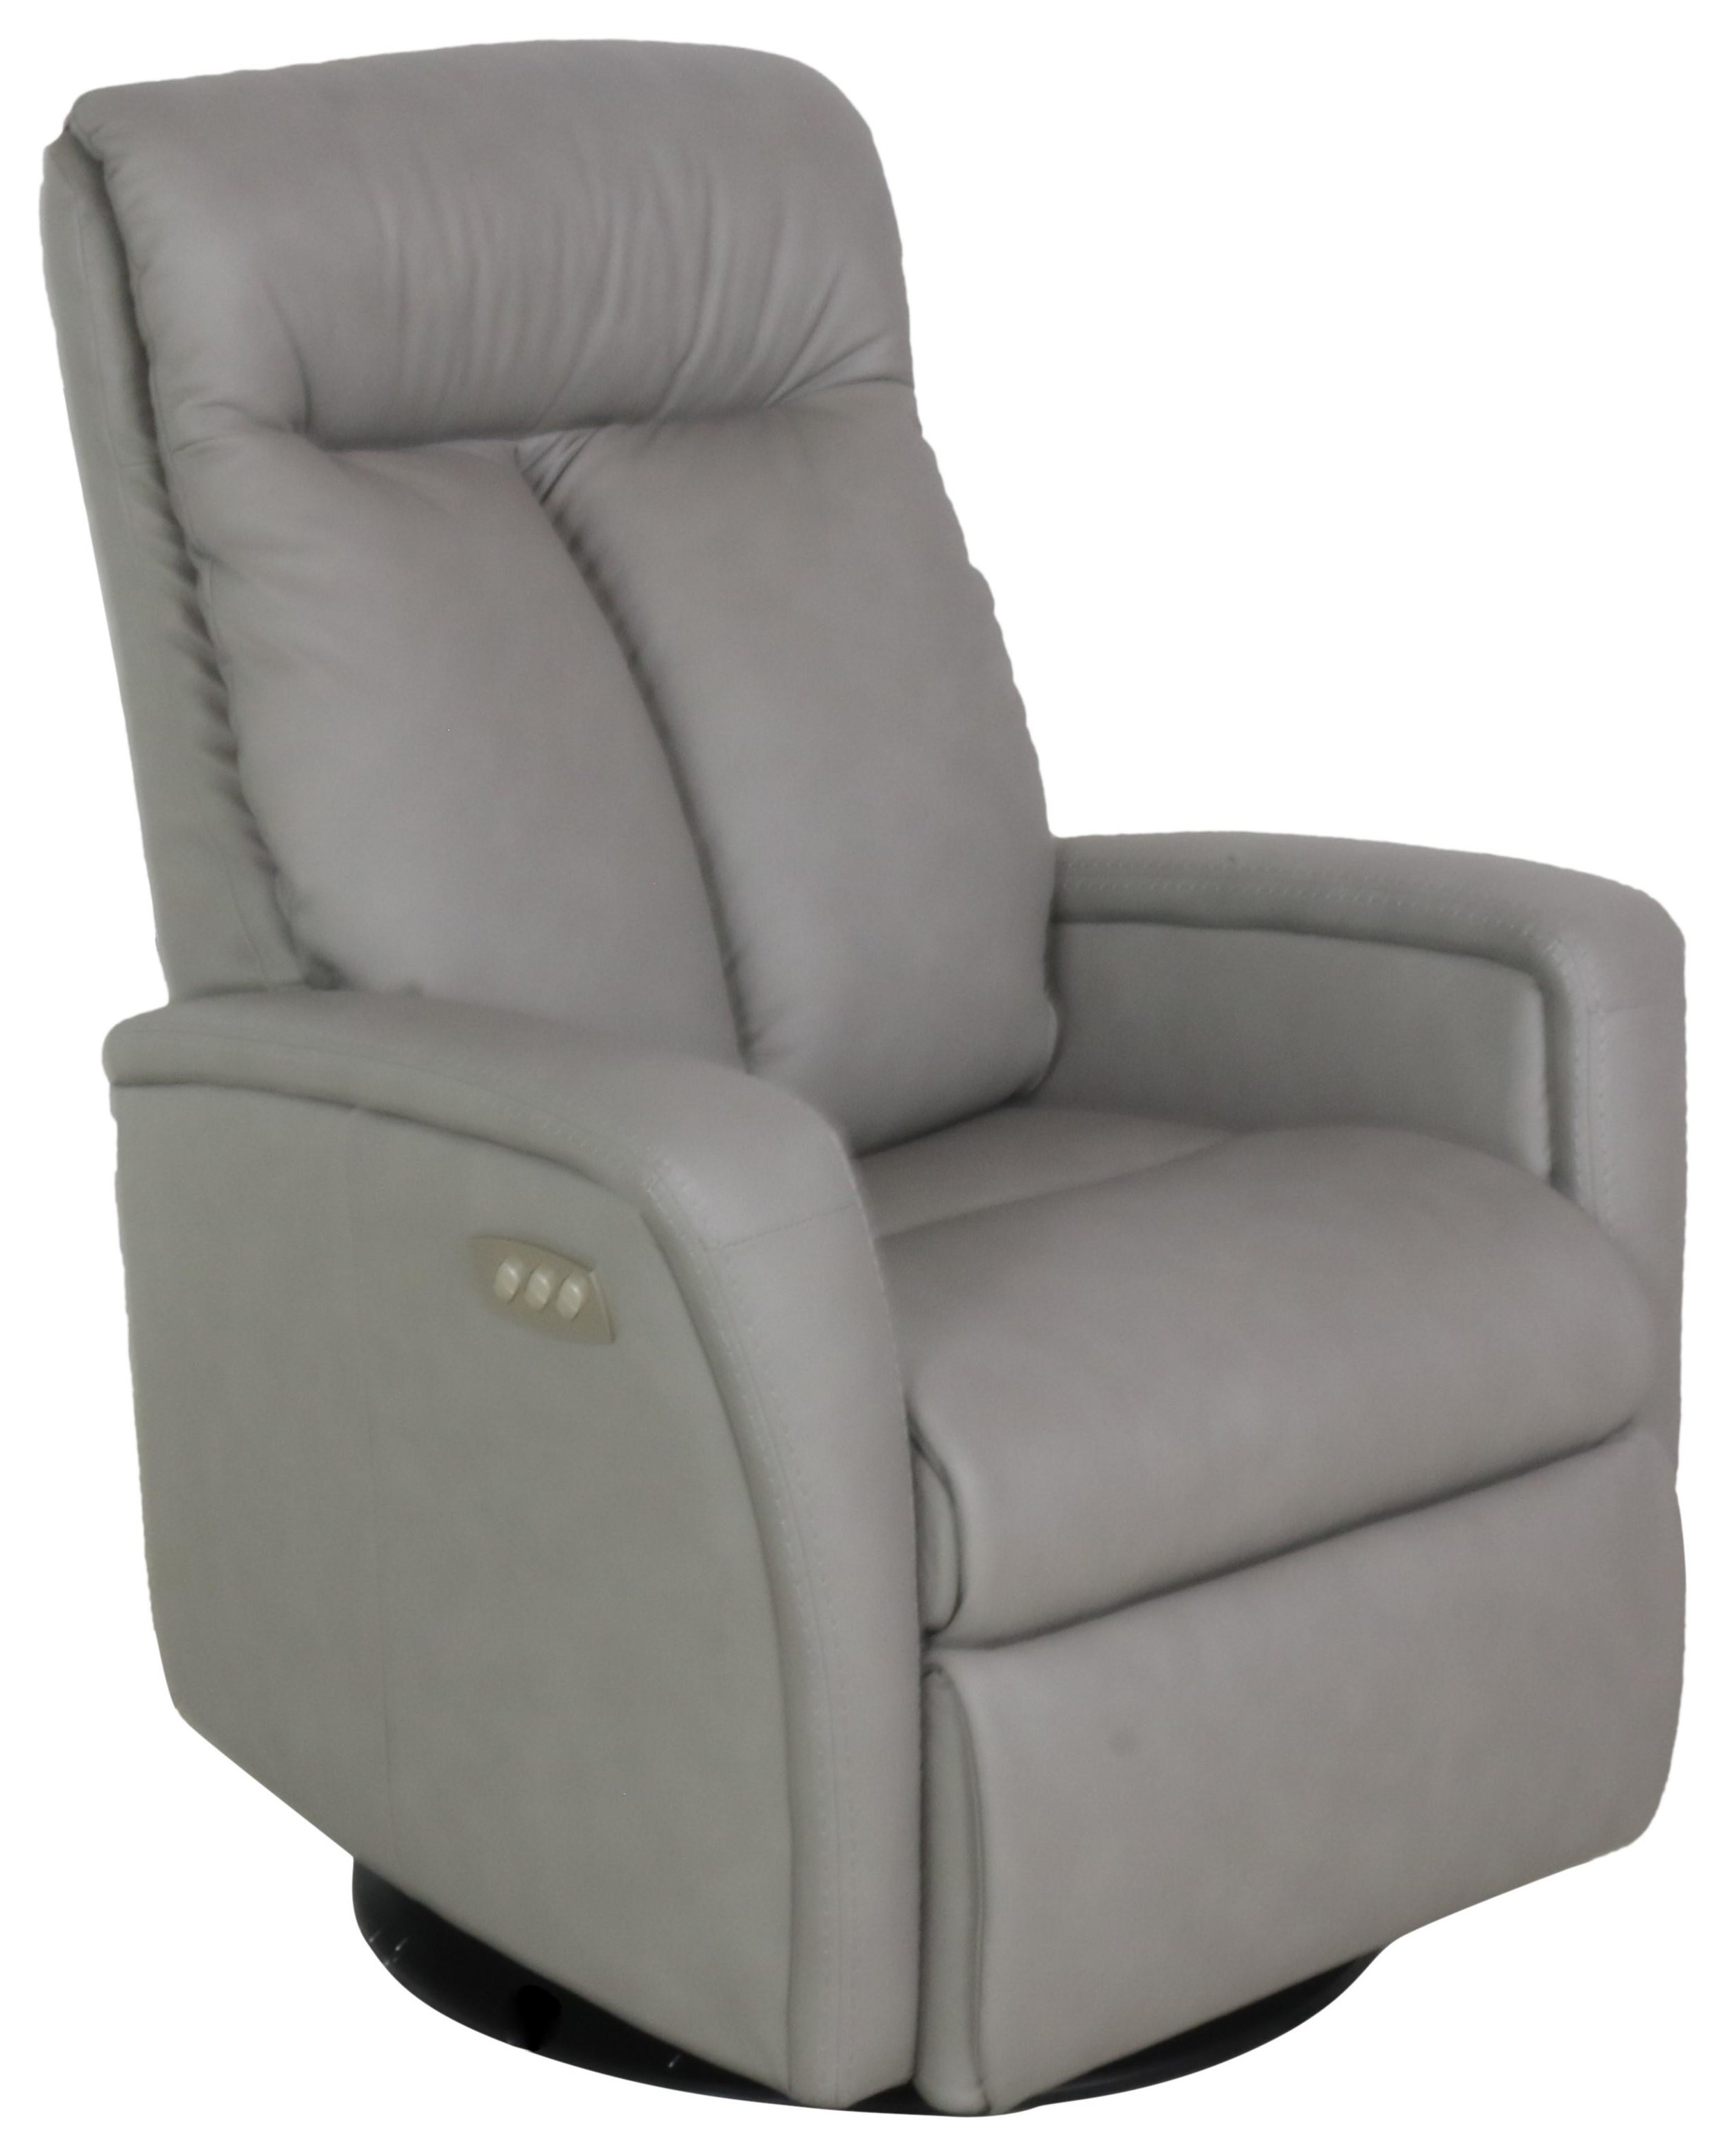 Recliners Swivel Power Recliner by IMG Norway at Sprintz Furniture